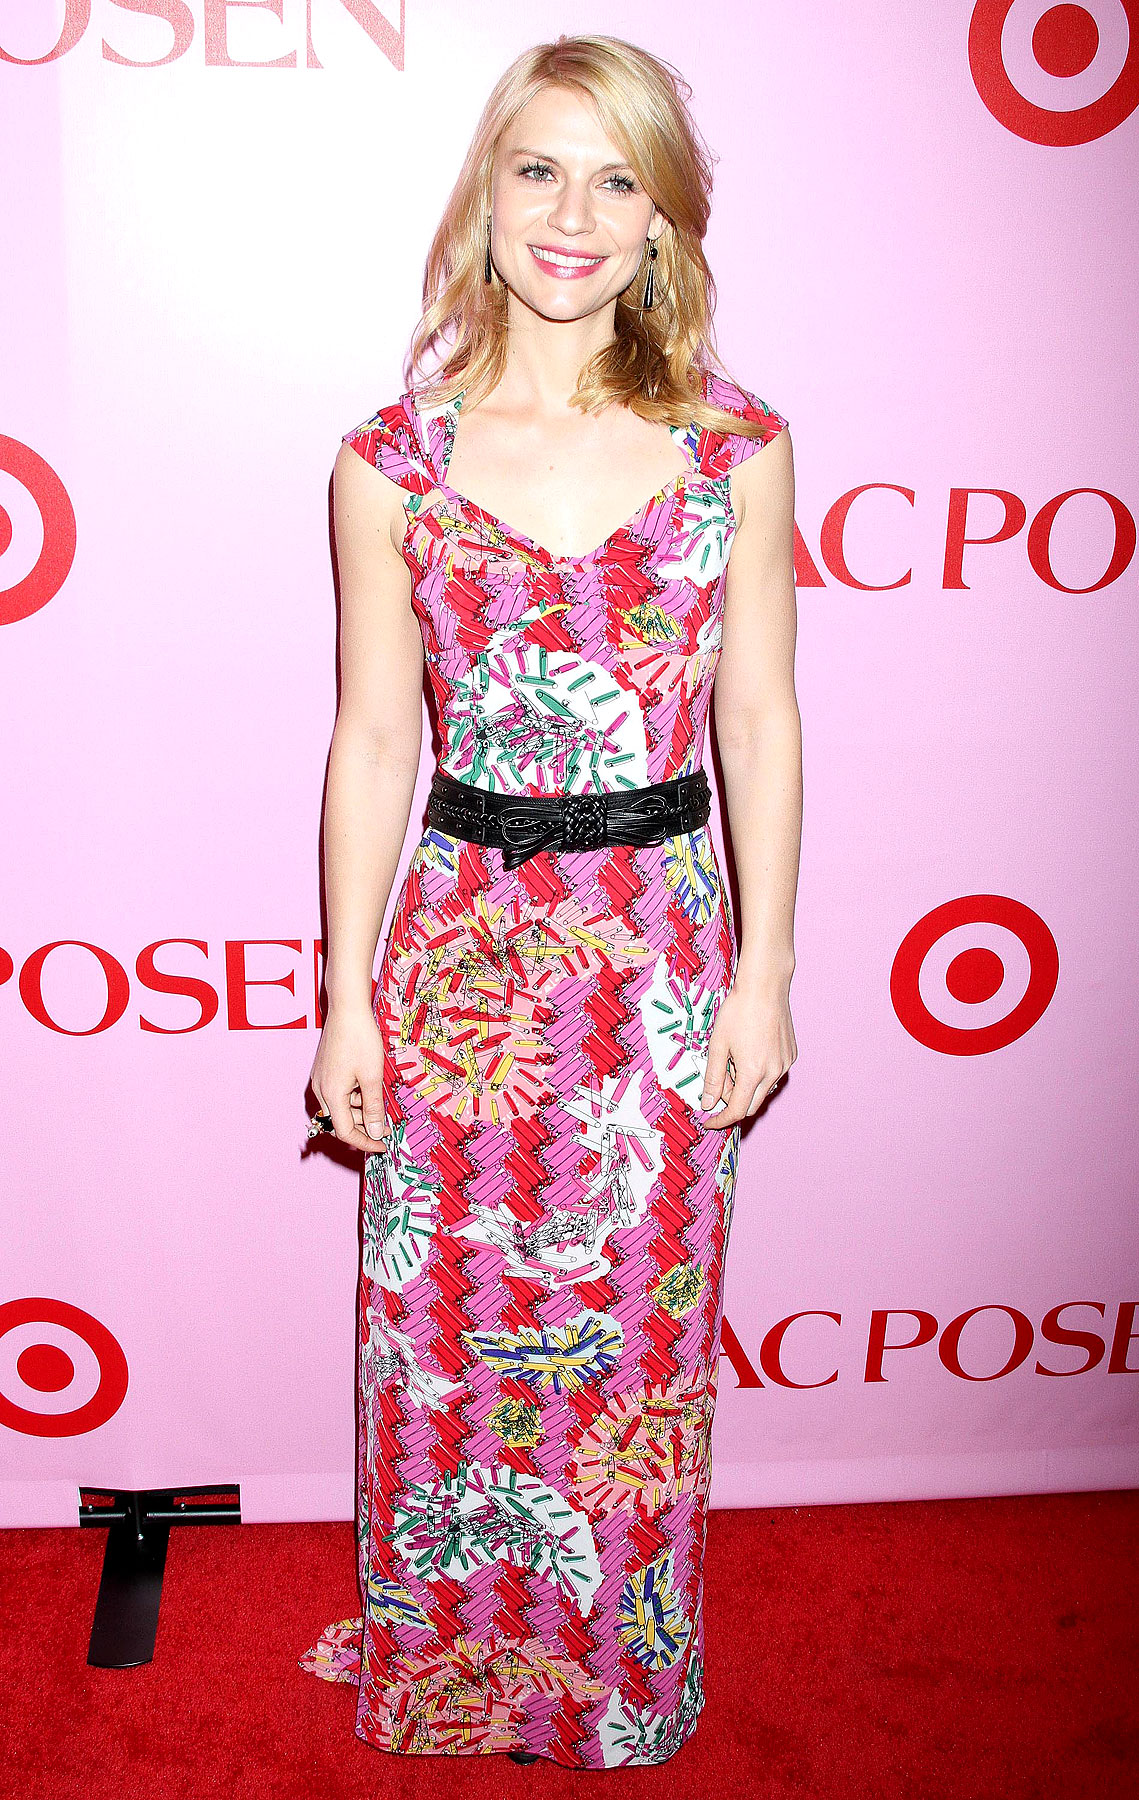 Zac Posen for Target Launch Party Attracts Mostly Well Dressed Celebs (PHOTOS)